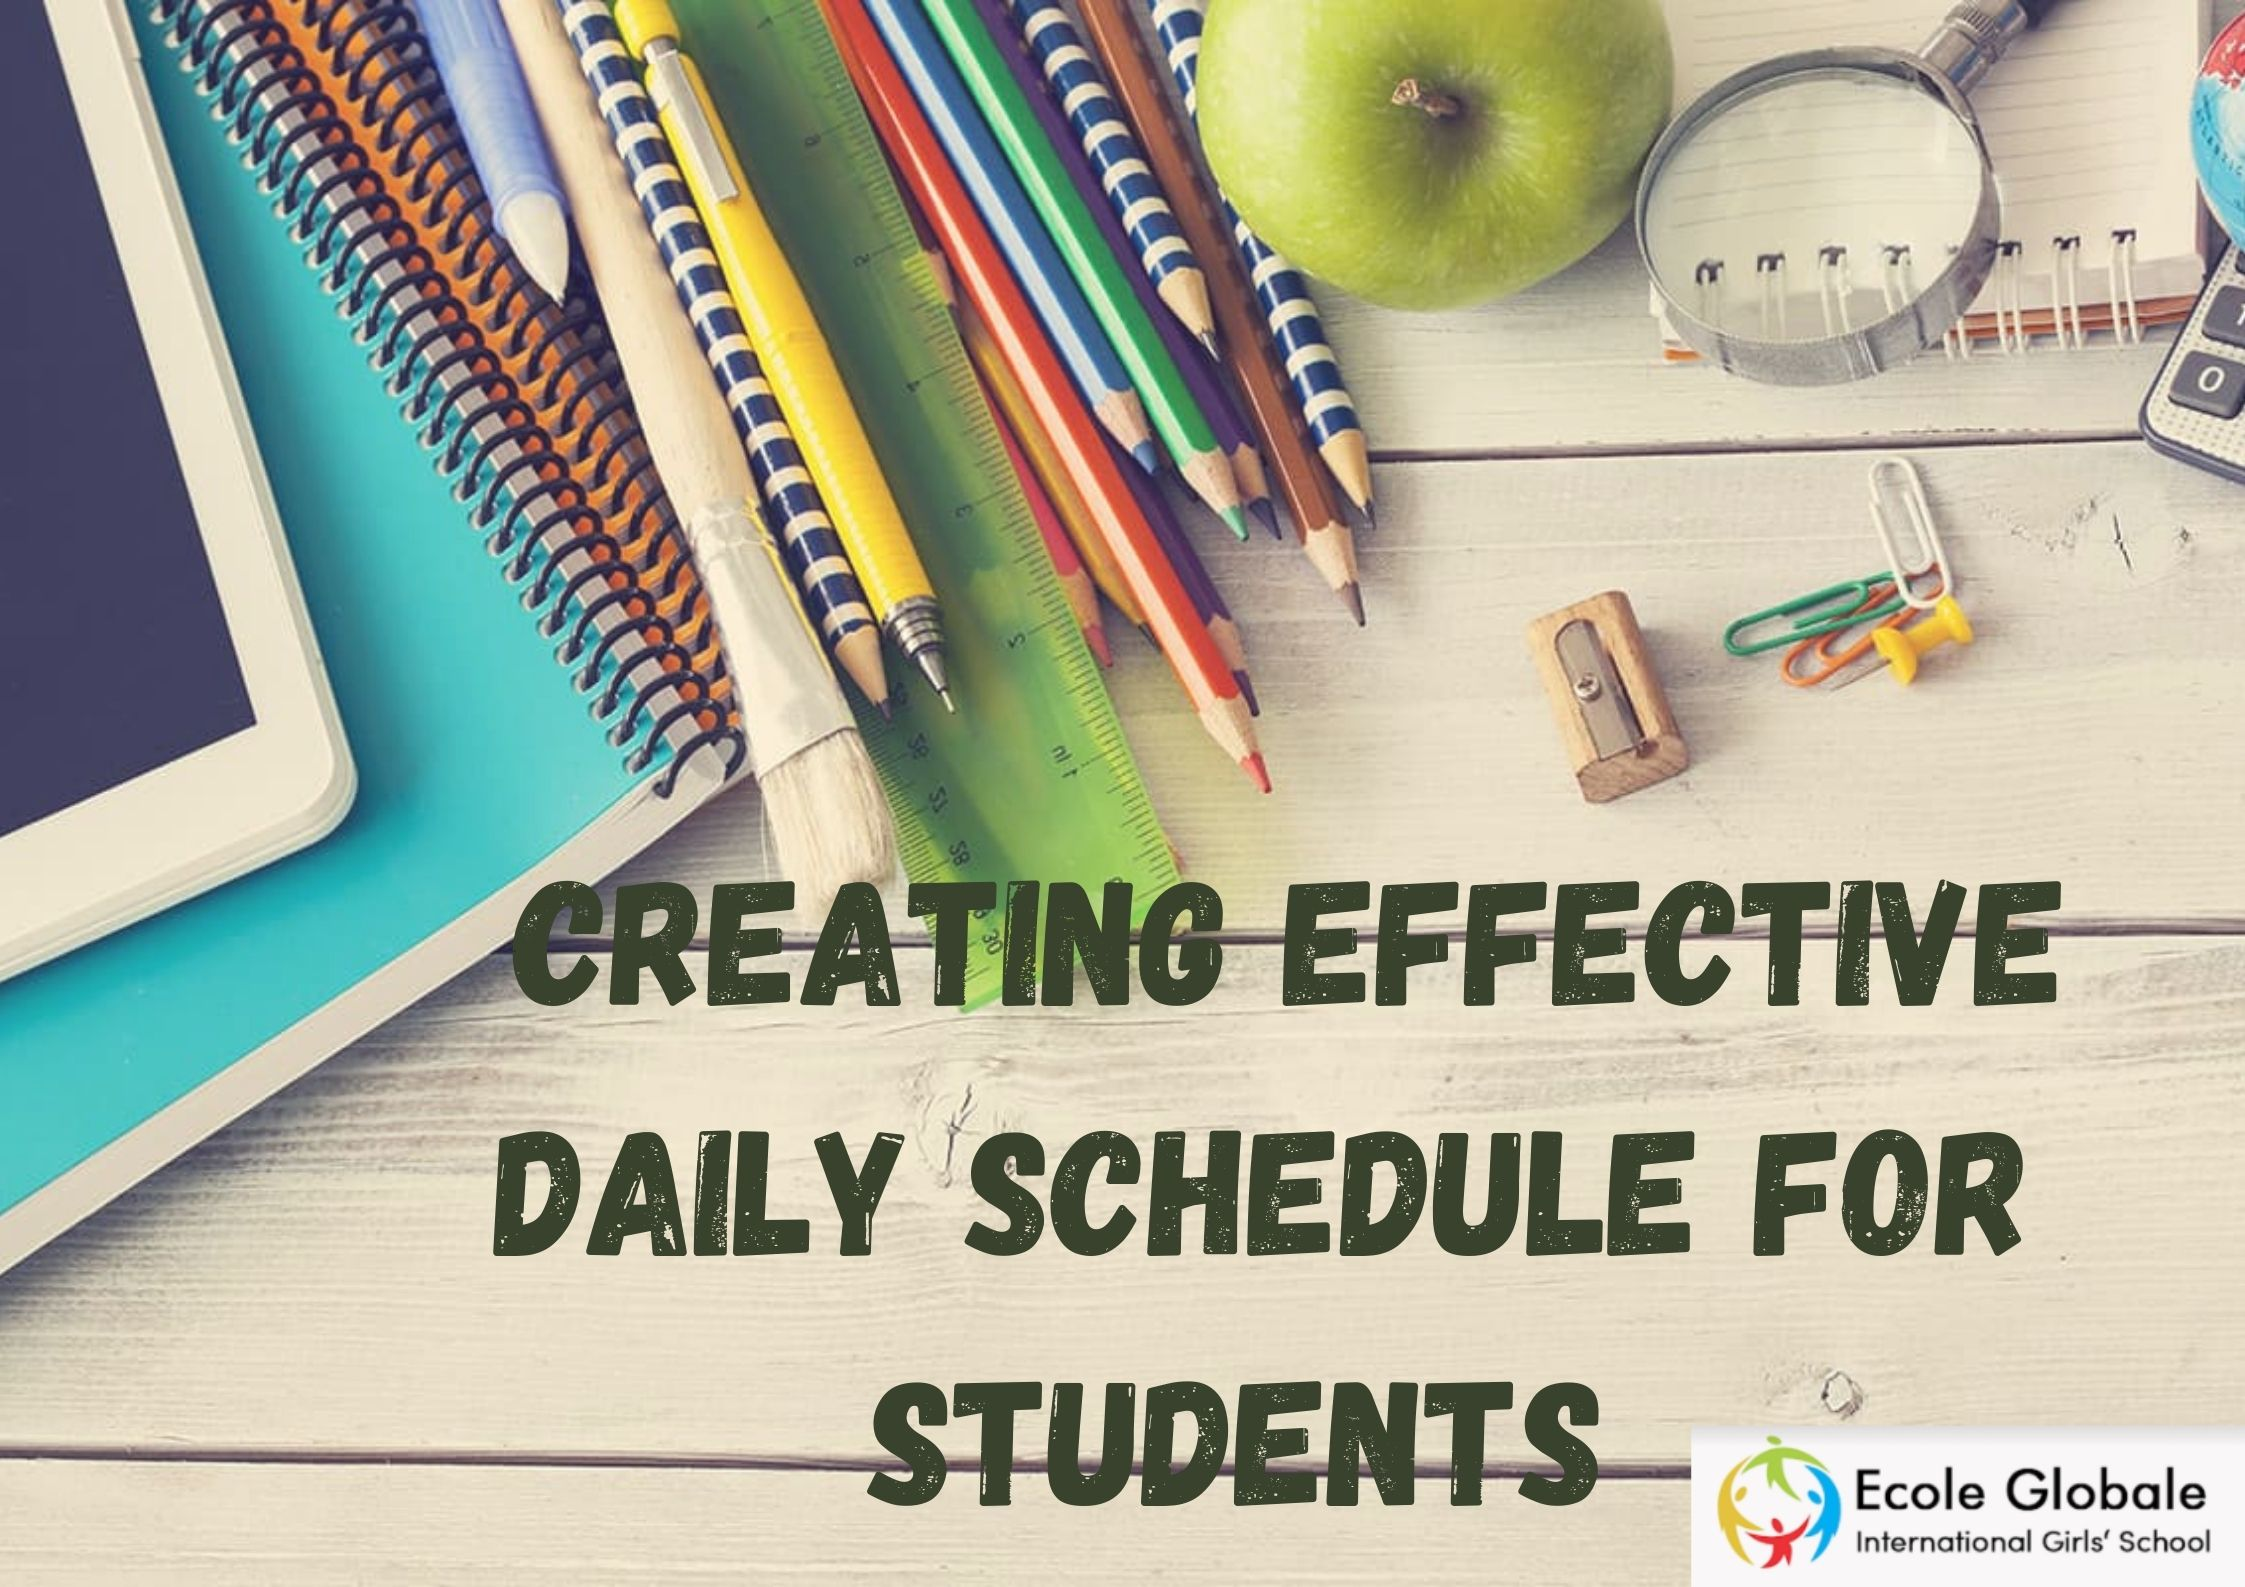 HOW TO CREATE AN EFFECTIVE DAILY SCHEDULE FOR STUDENTS